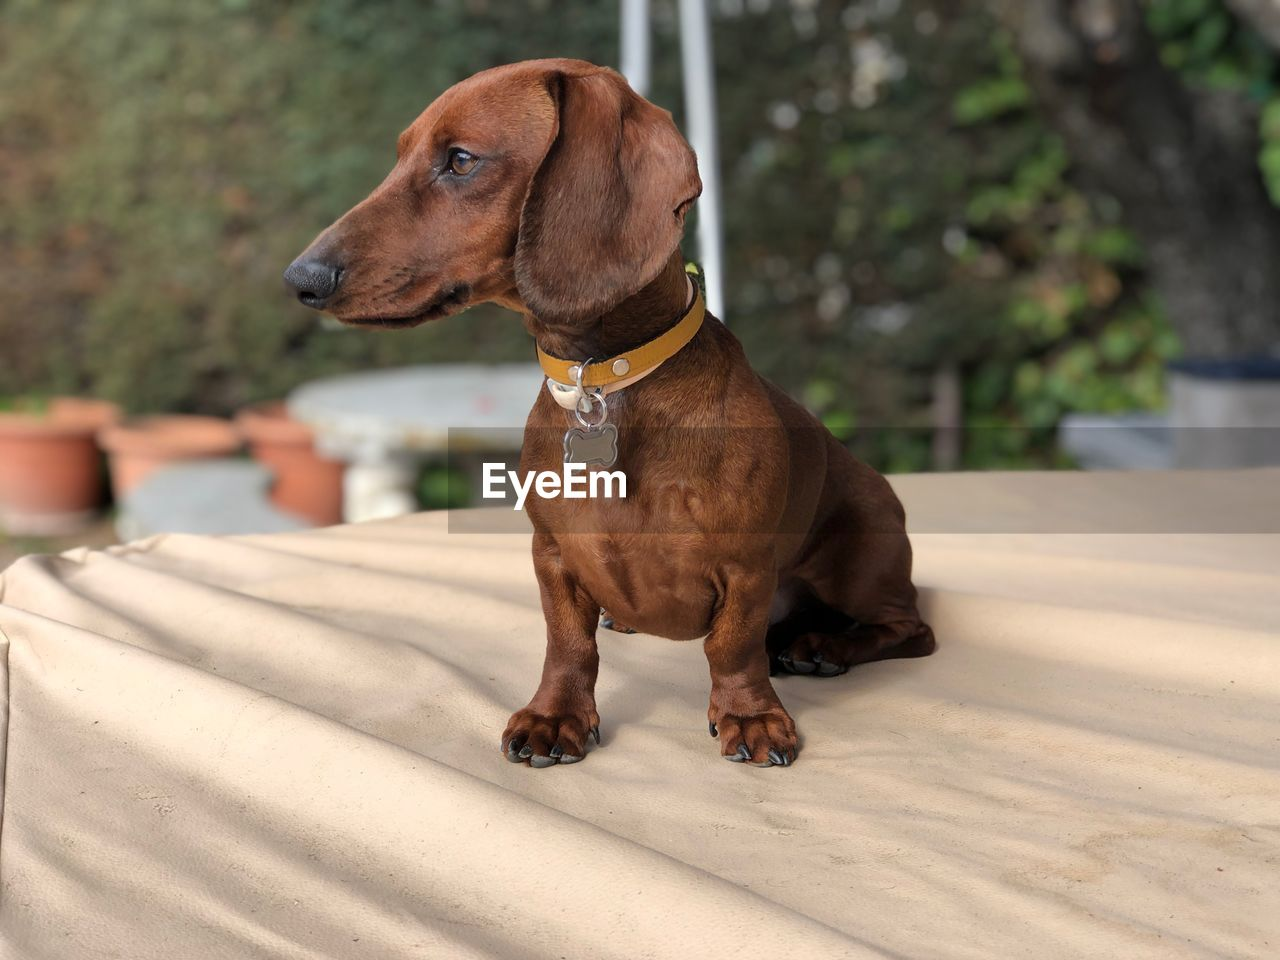 dog, canine, one animal, domestic animals, animal, animal themes, mammal, pets, domestic, vertebrate, looking, looking away, focus on foreground, sitting, brown, no people, day, collar, pet collar, outdoors